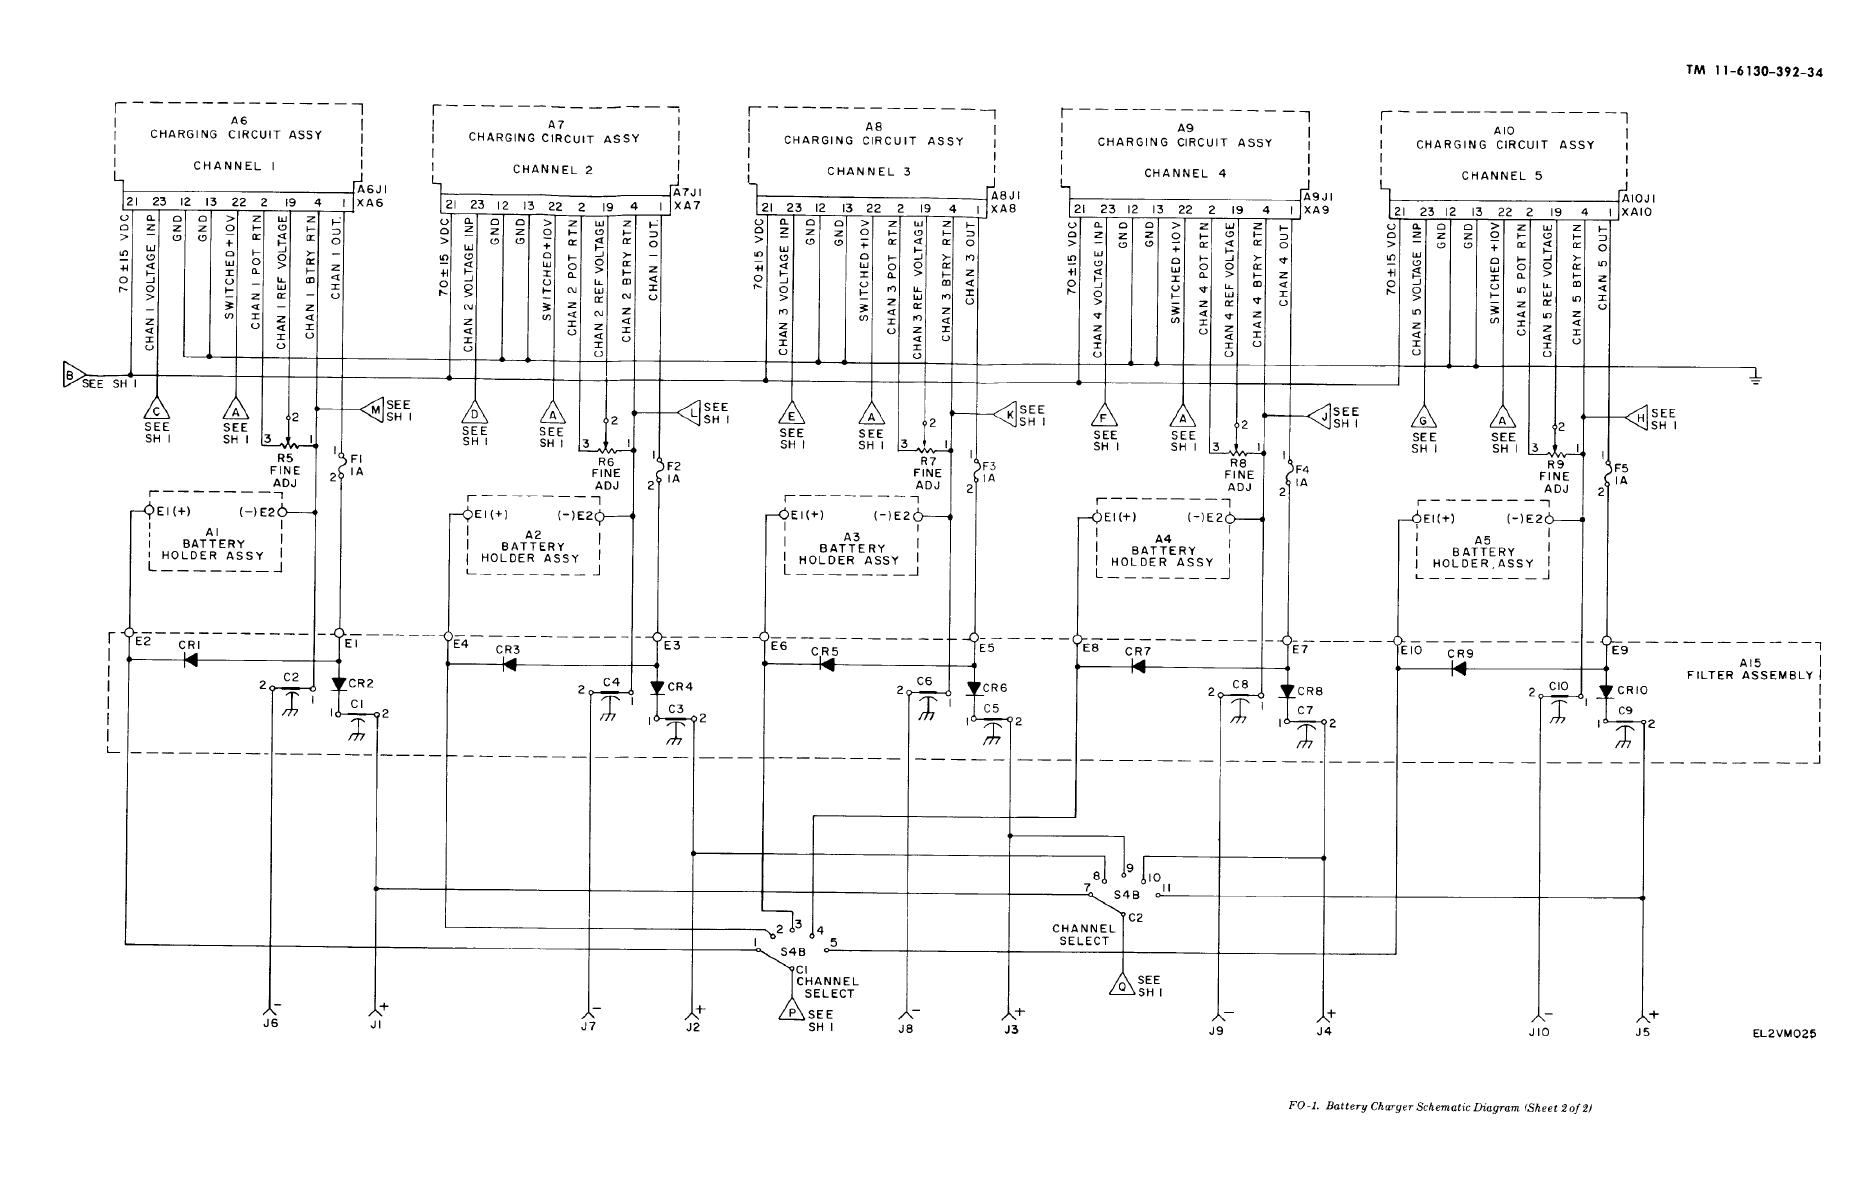 Fo 1 Battery Charger Schematic Diagram Sheet 2 Of 12v Circuit On Car